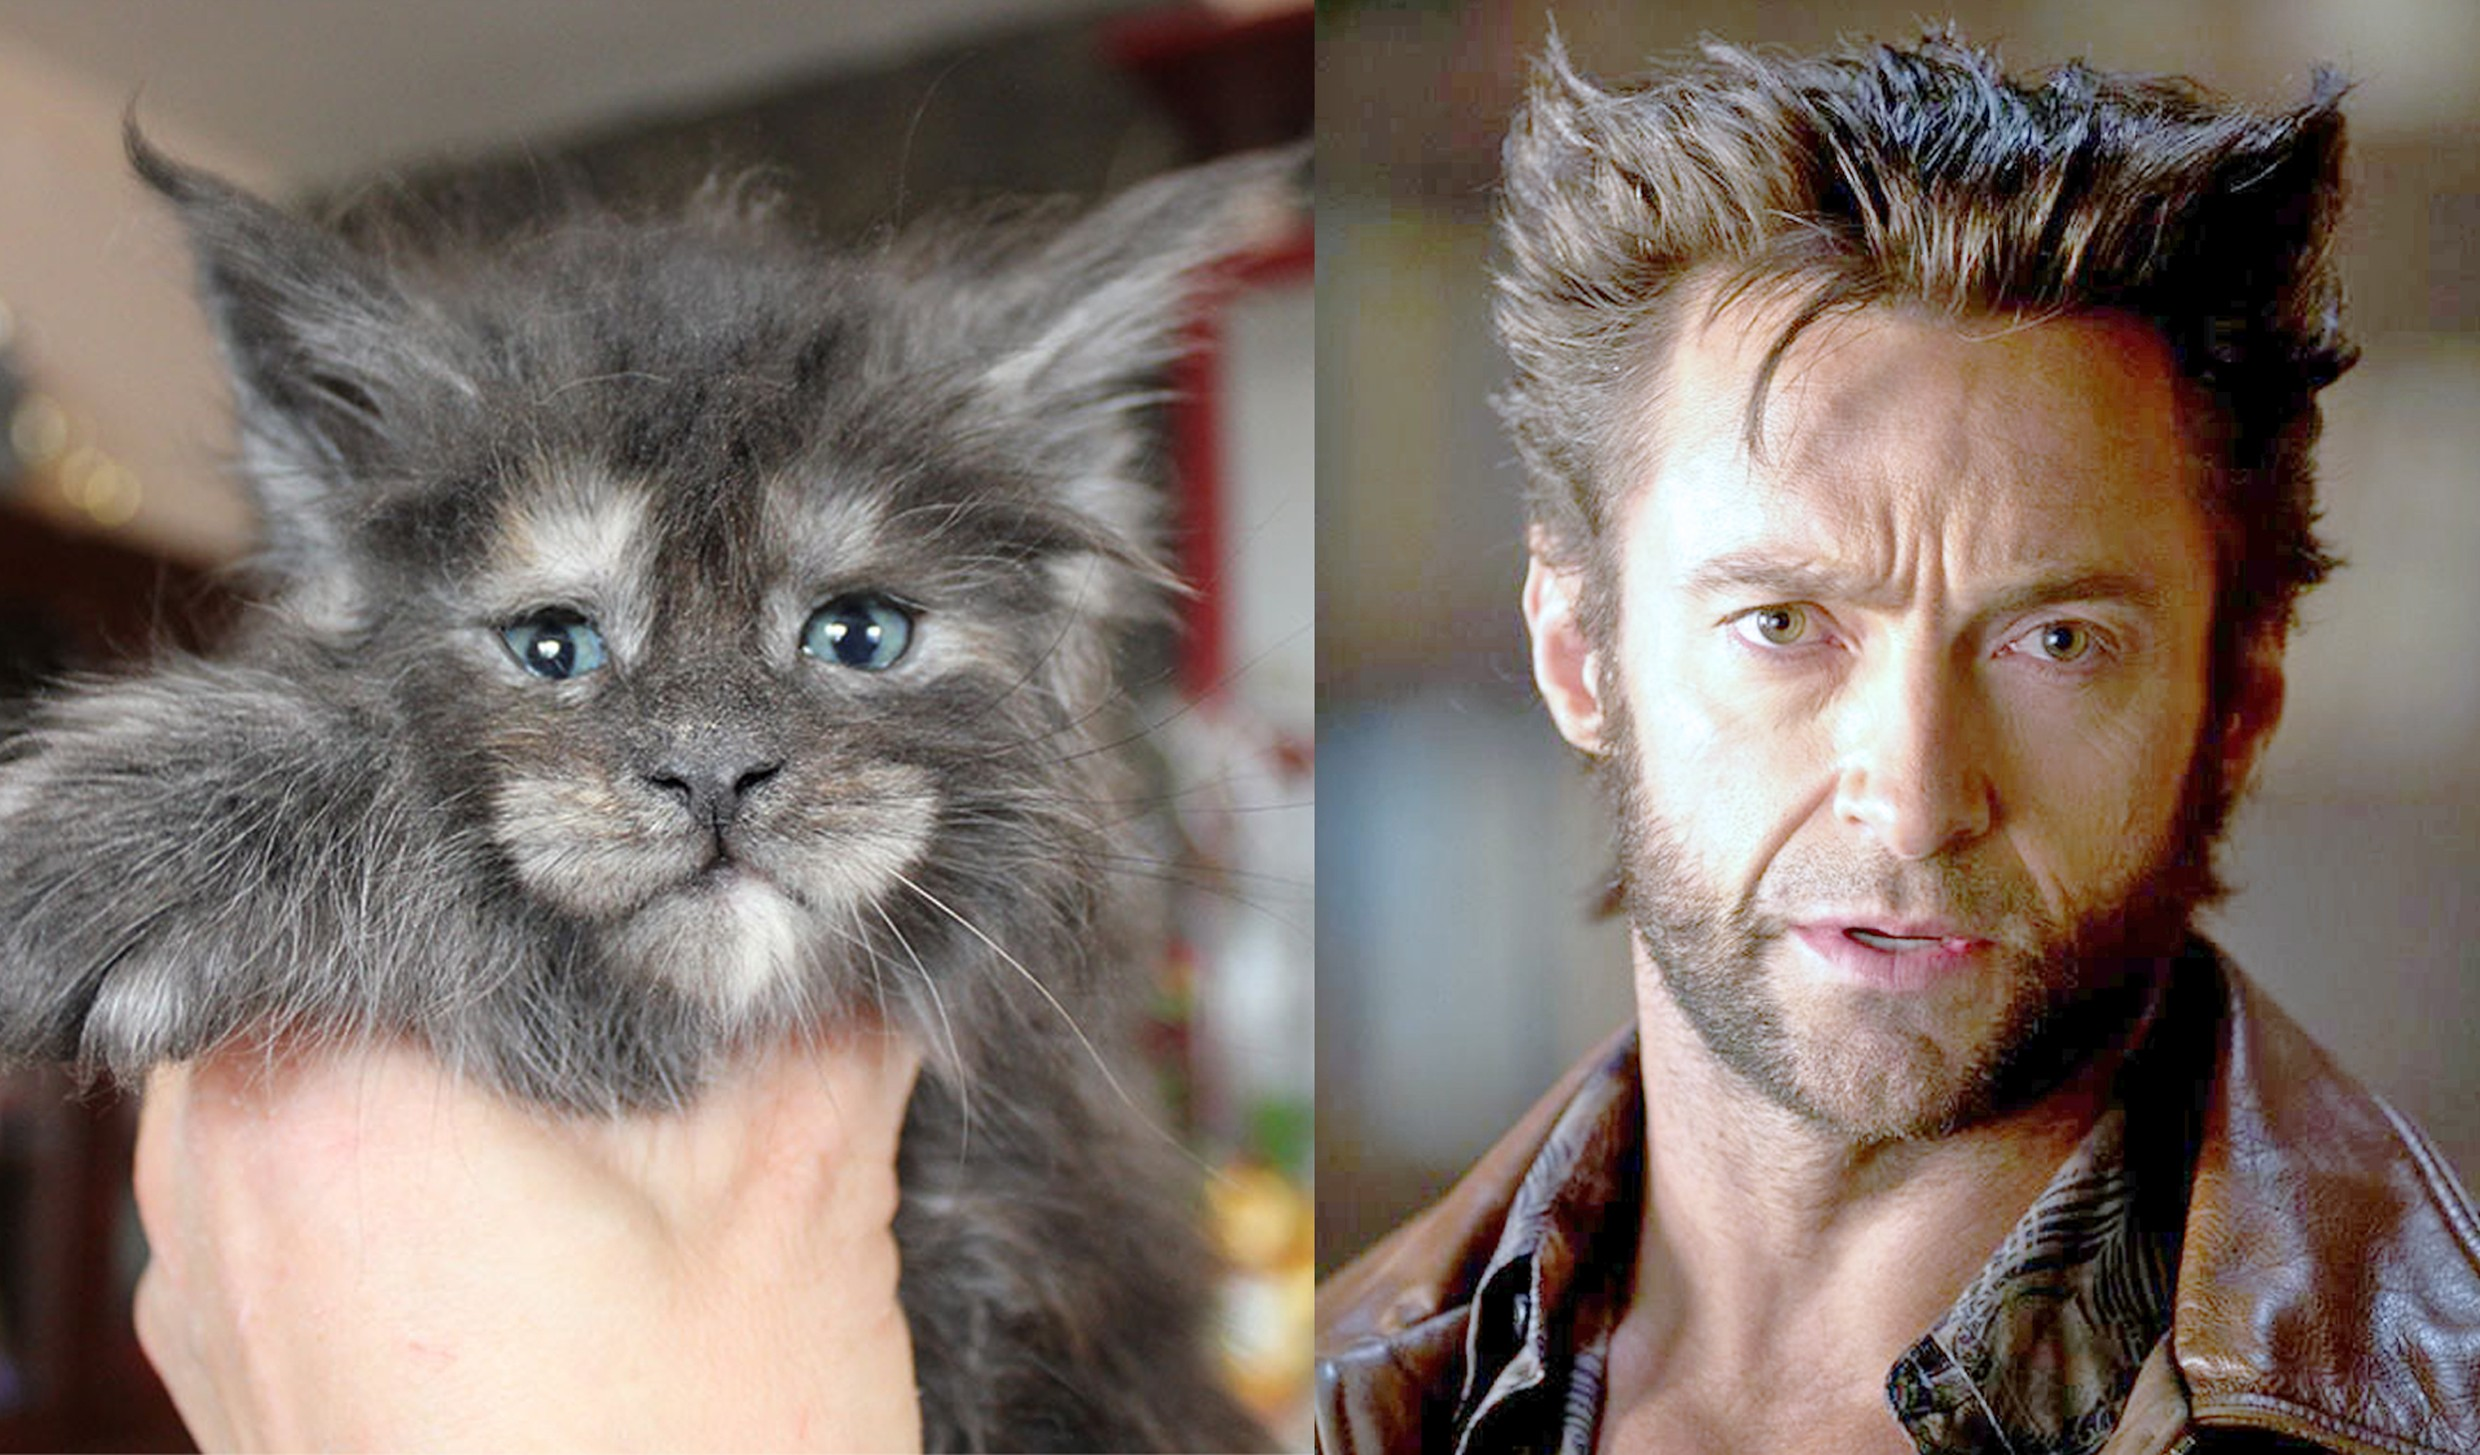 ADORABLE KITTEN LOOKS JUST LIKE WOLVERINE Chatty Buddha